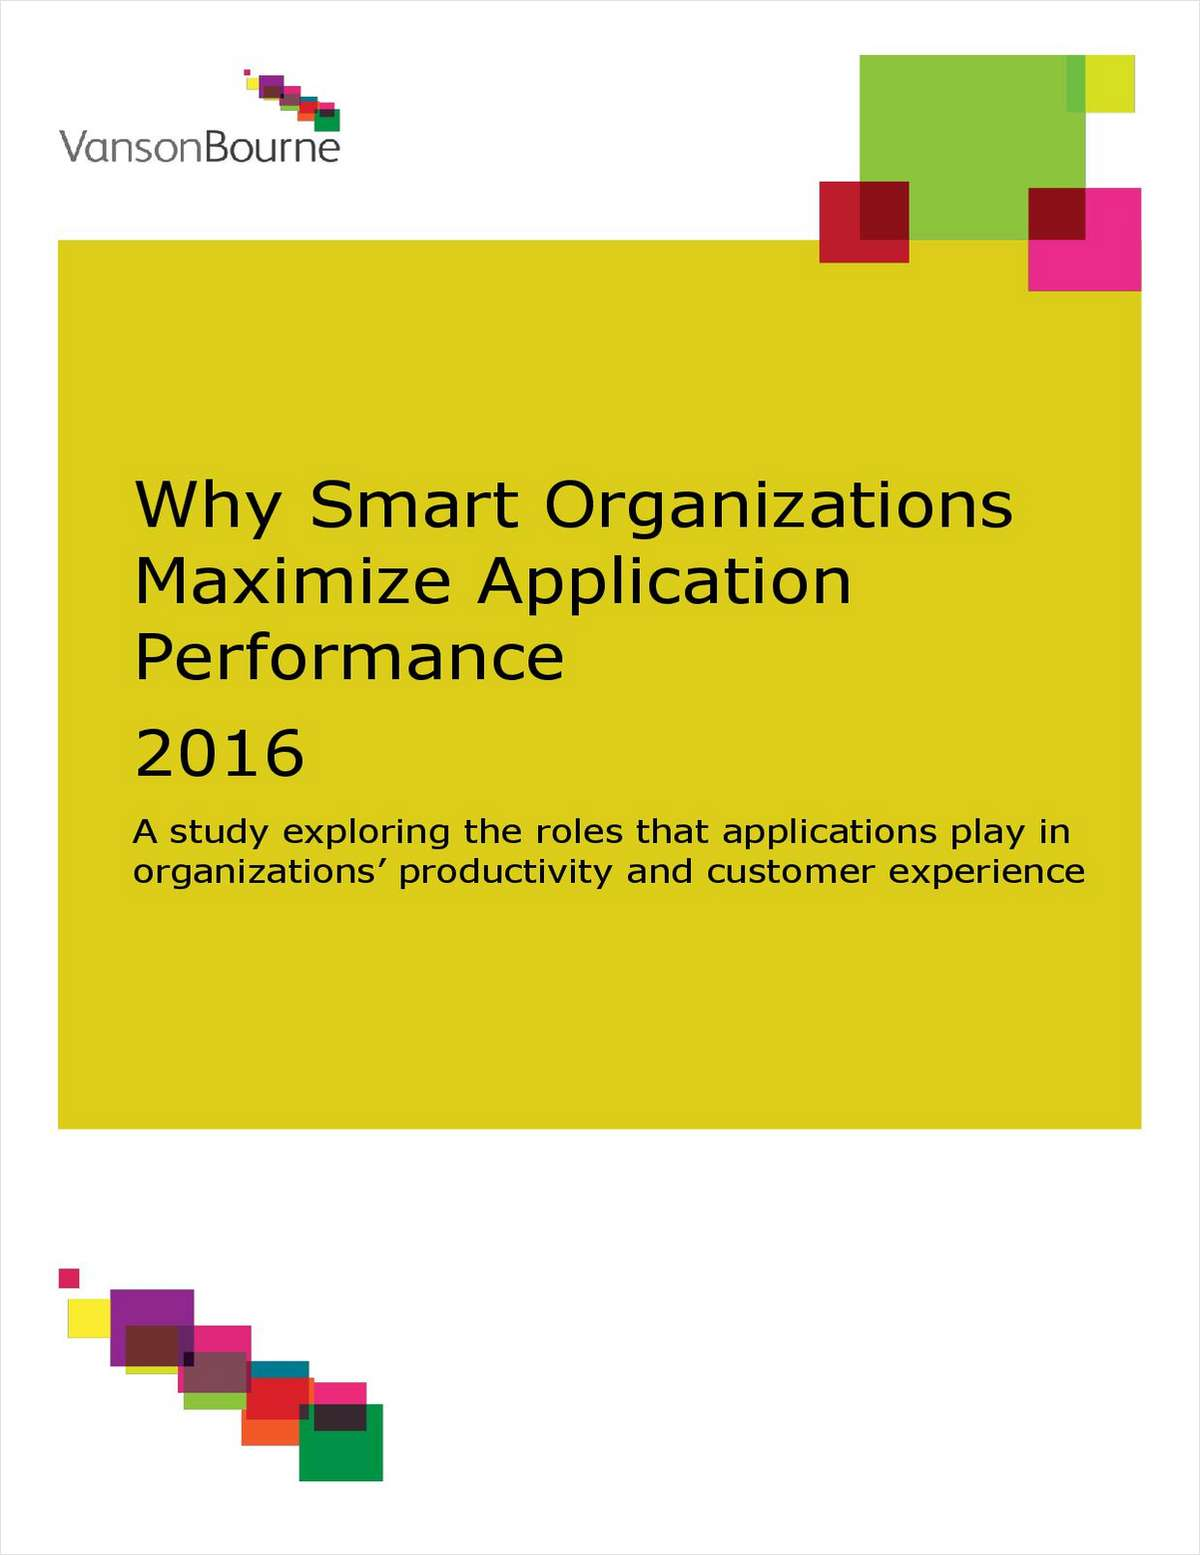 Why Smart Organizations Maximize Application Performance